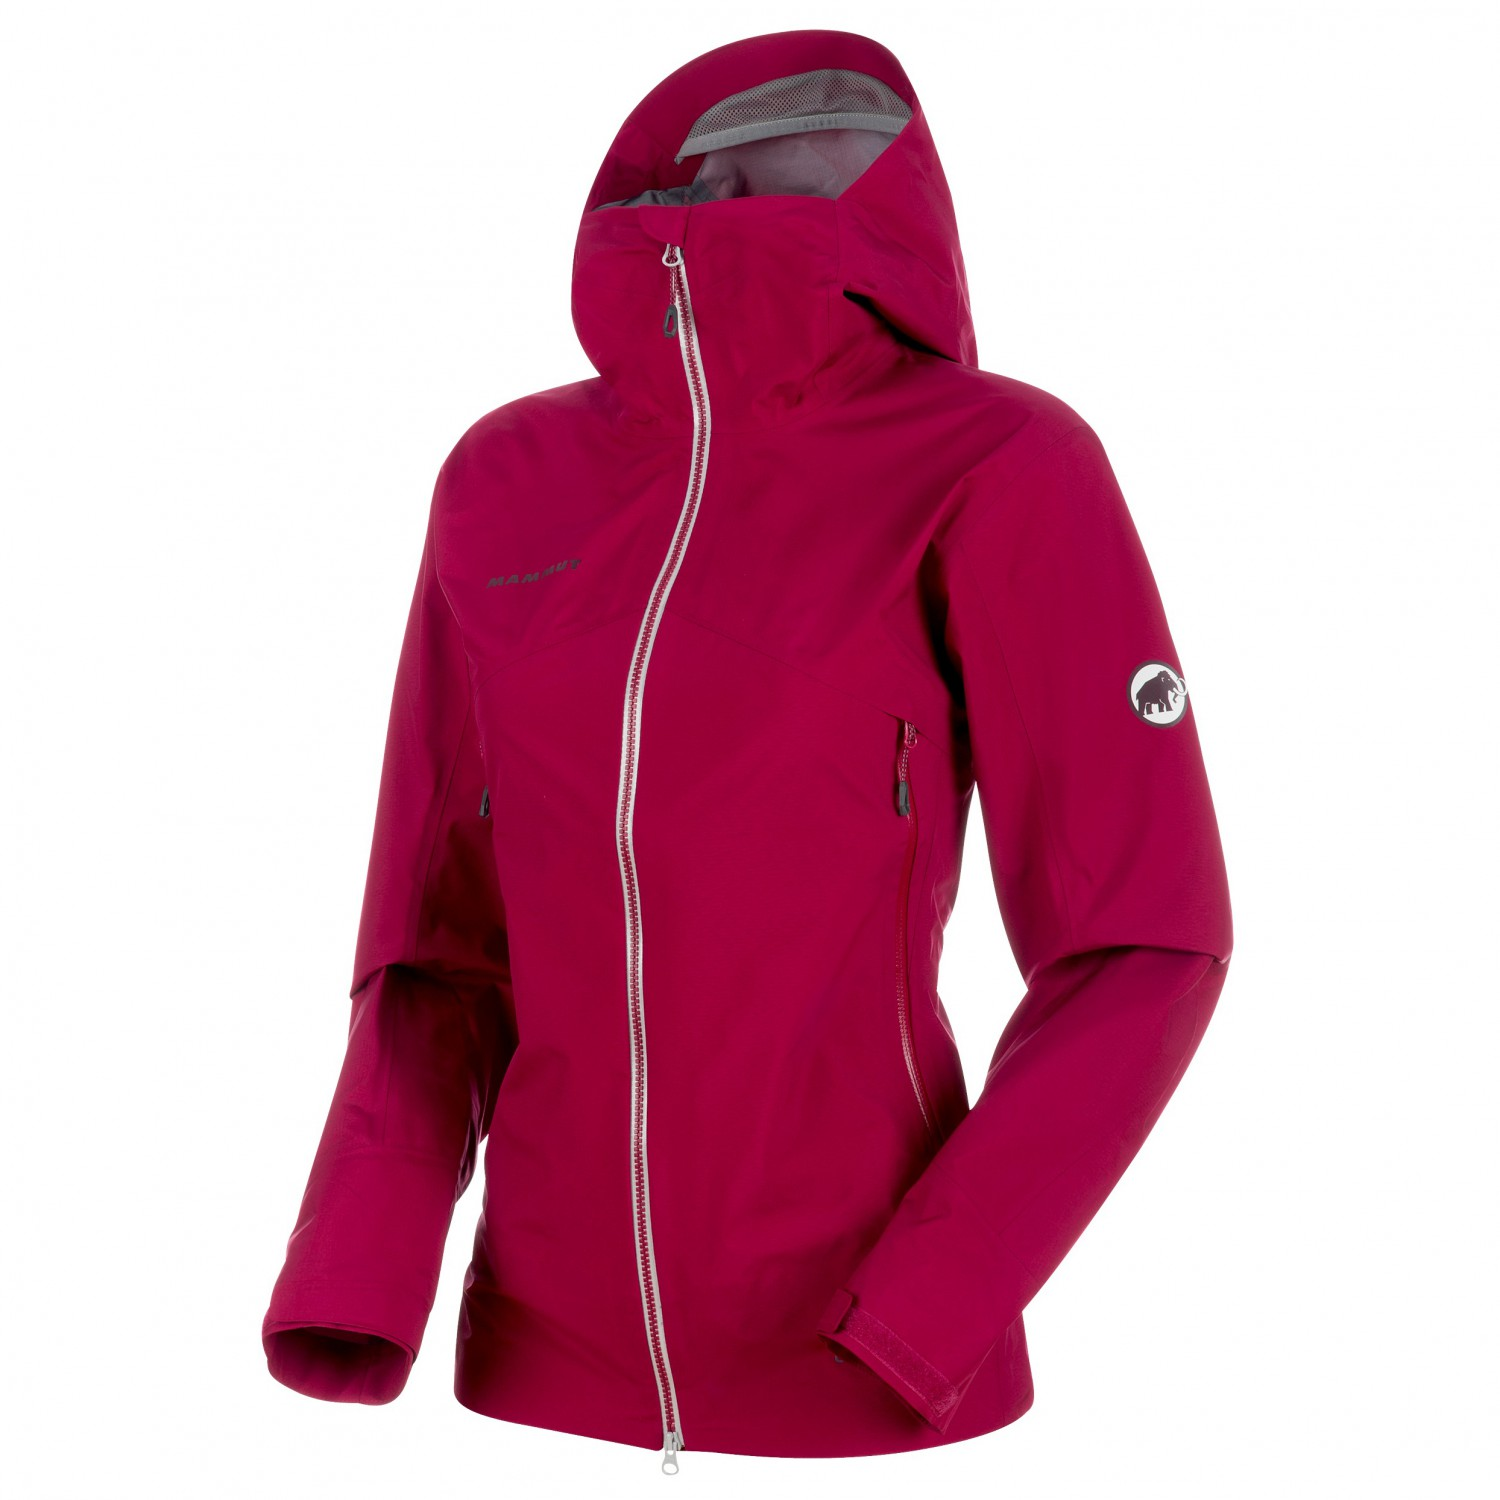 shop for genuine new lower prices outlet store sale Mammut Meron Light HS Jacket - Waterproof jacket Women's ...